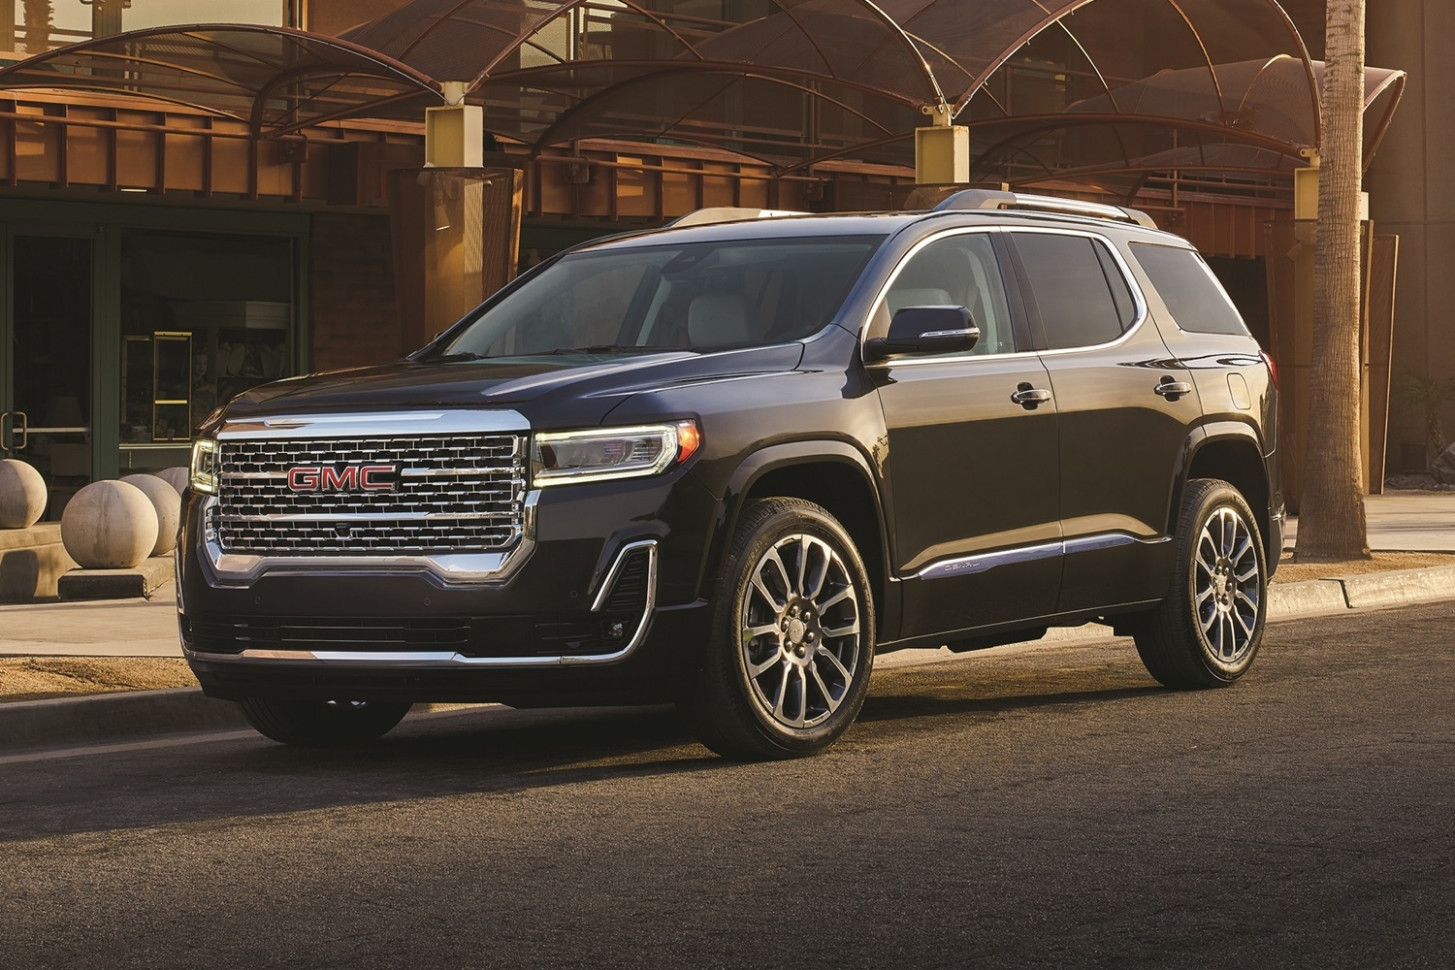 GMC Acadia Discount Totals $8,8 In April 8 | GM Authority